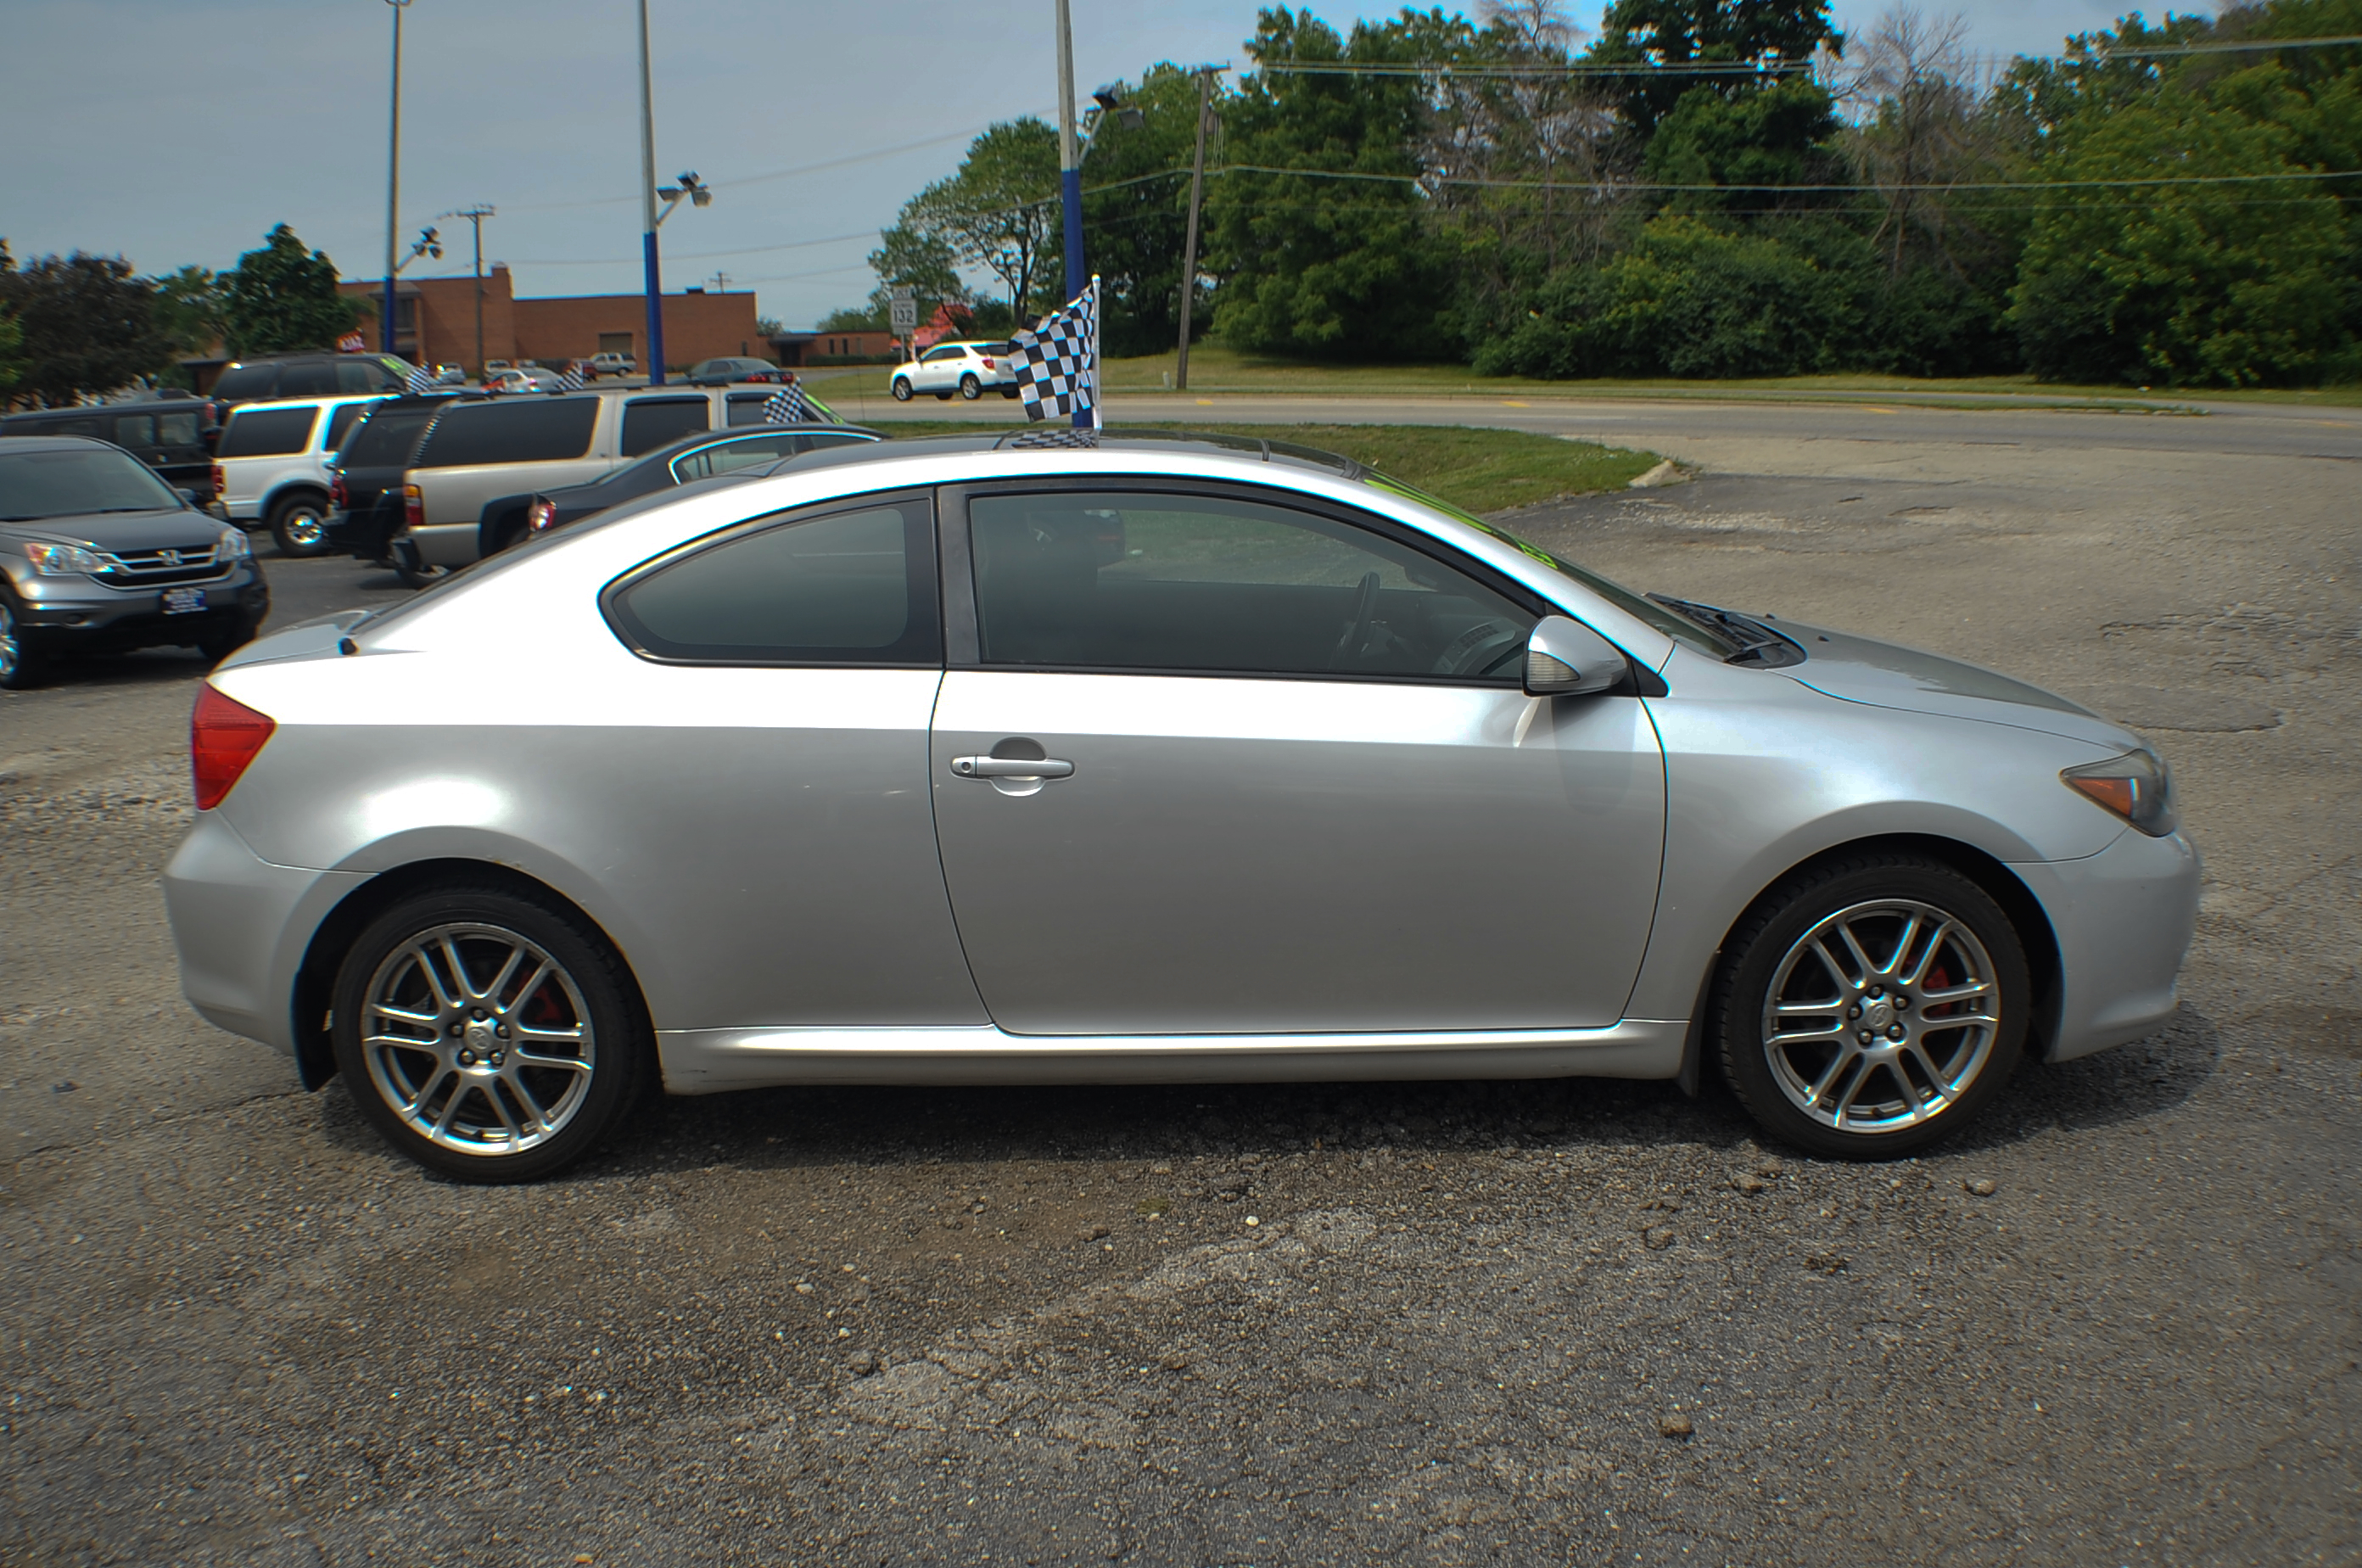 ... 2006 Scion TC Manual Shift Coupe Used Car Sale Lindenhurst Gurnee ...